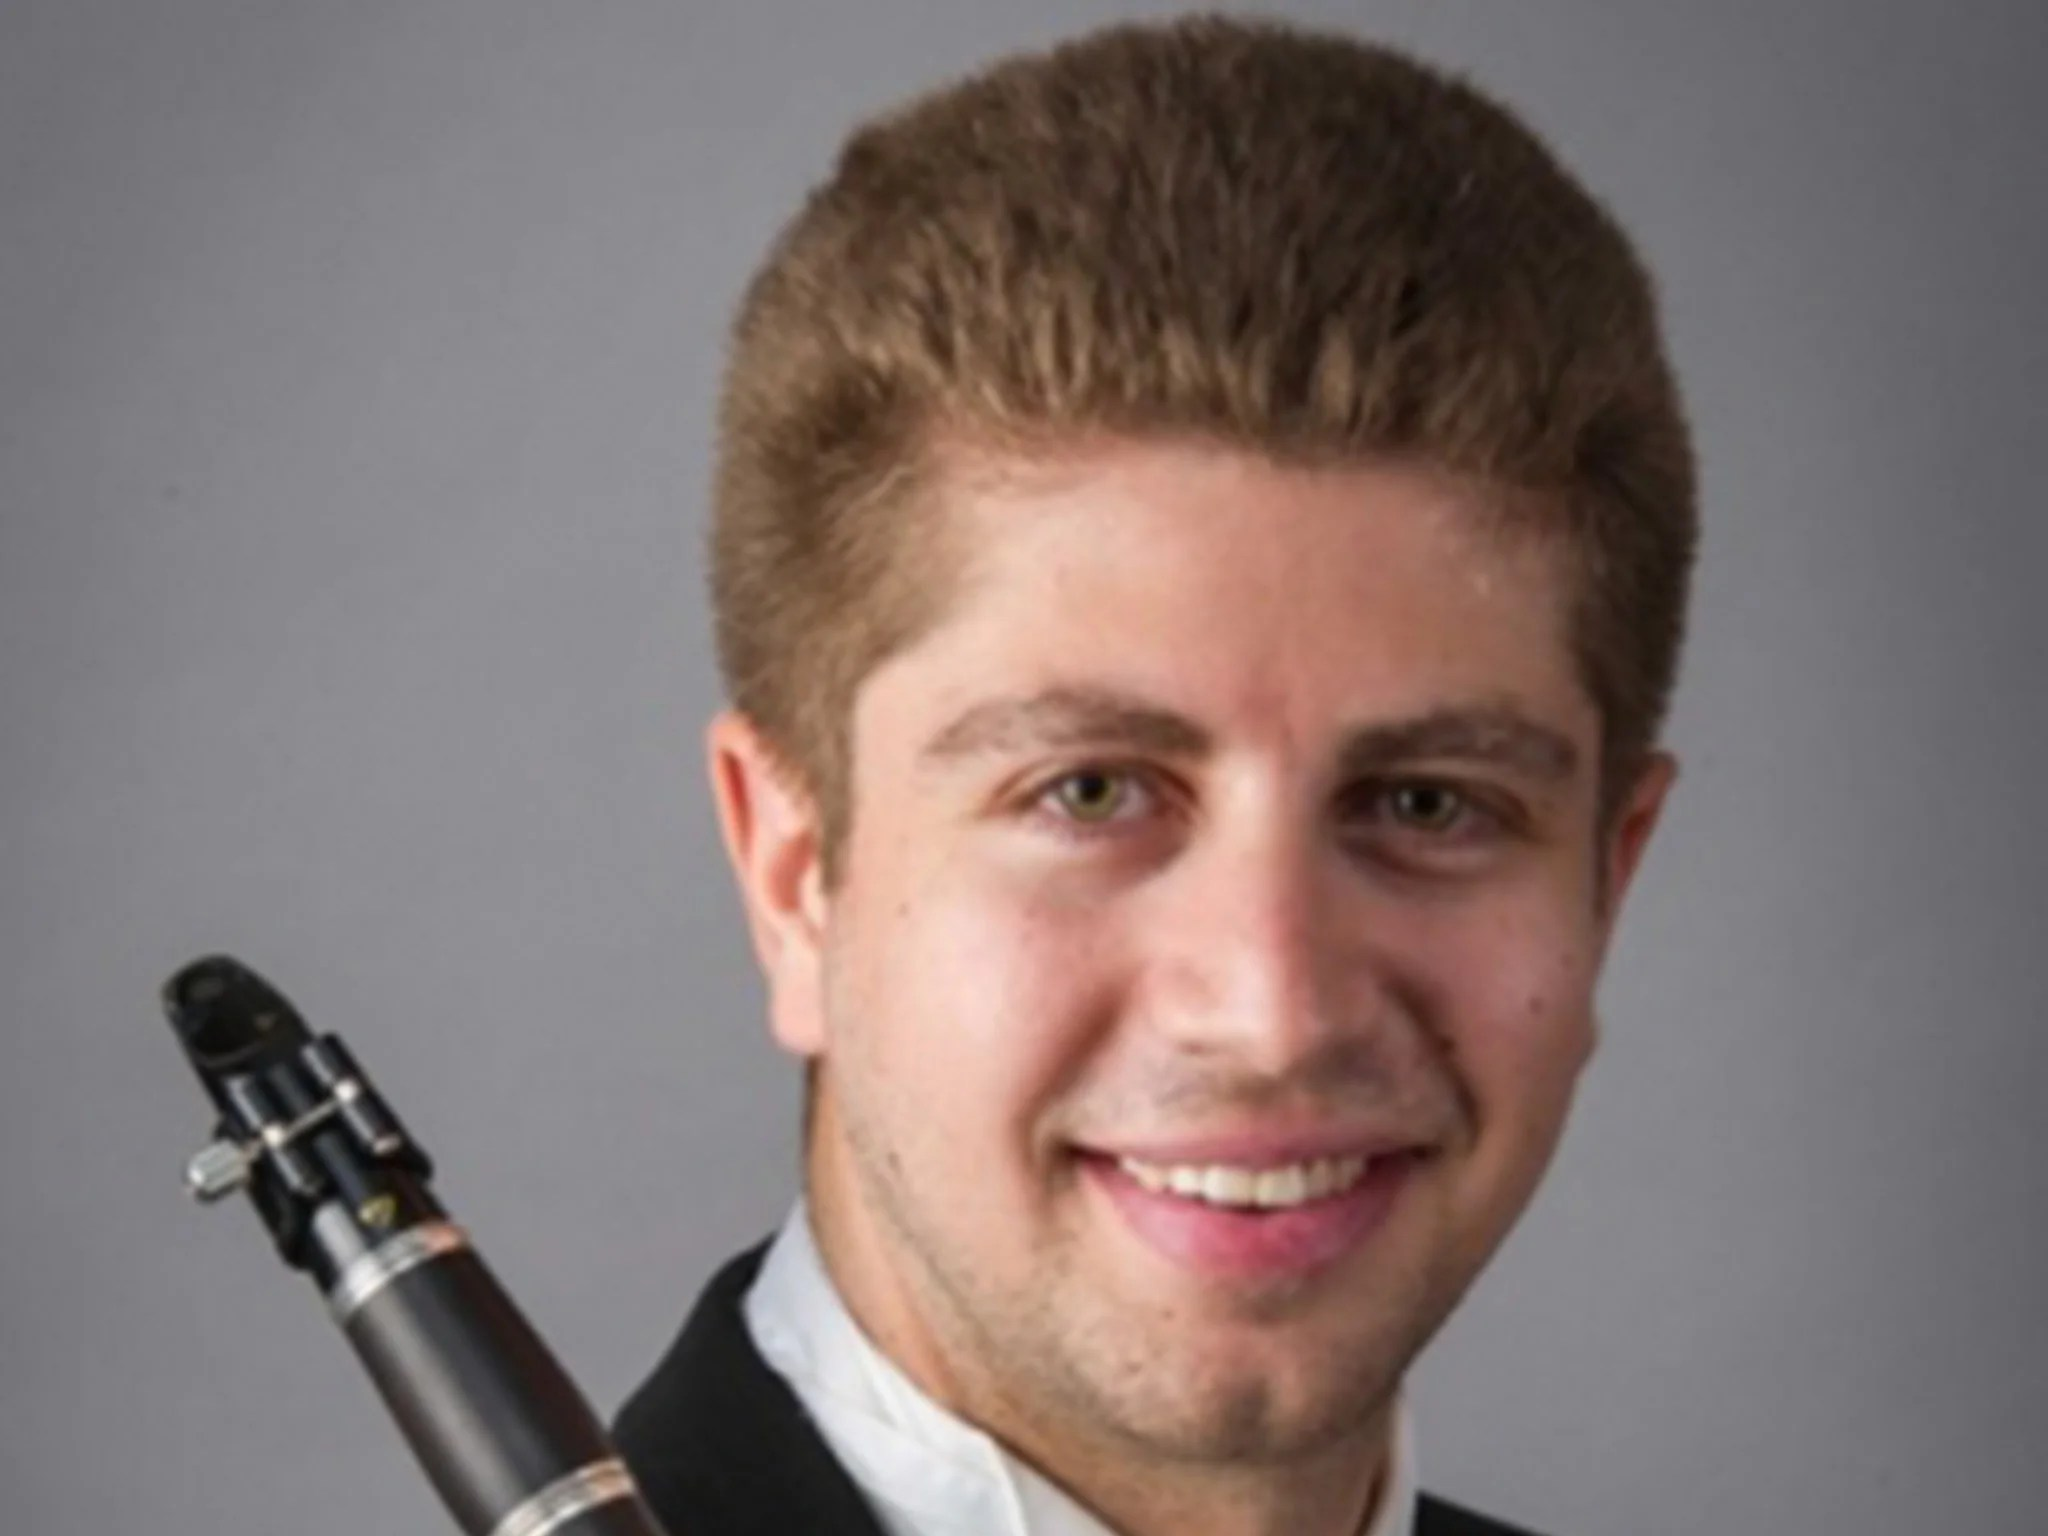 Young musician's career sabotaged by ex-girlfriend who secretly ...